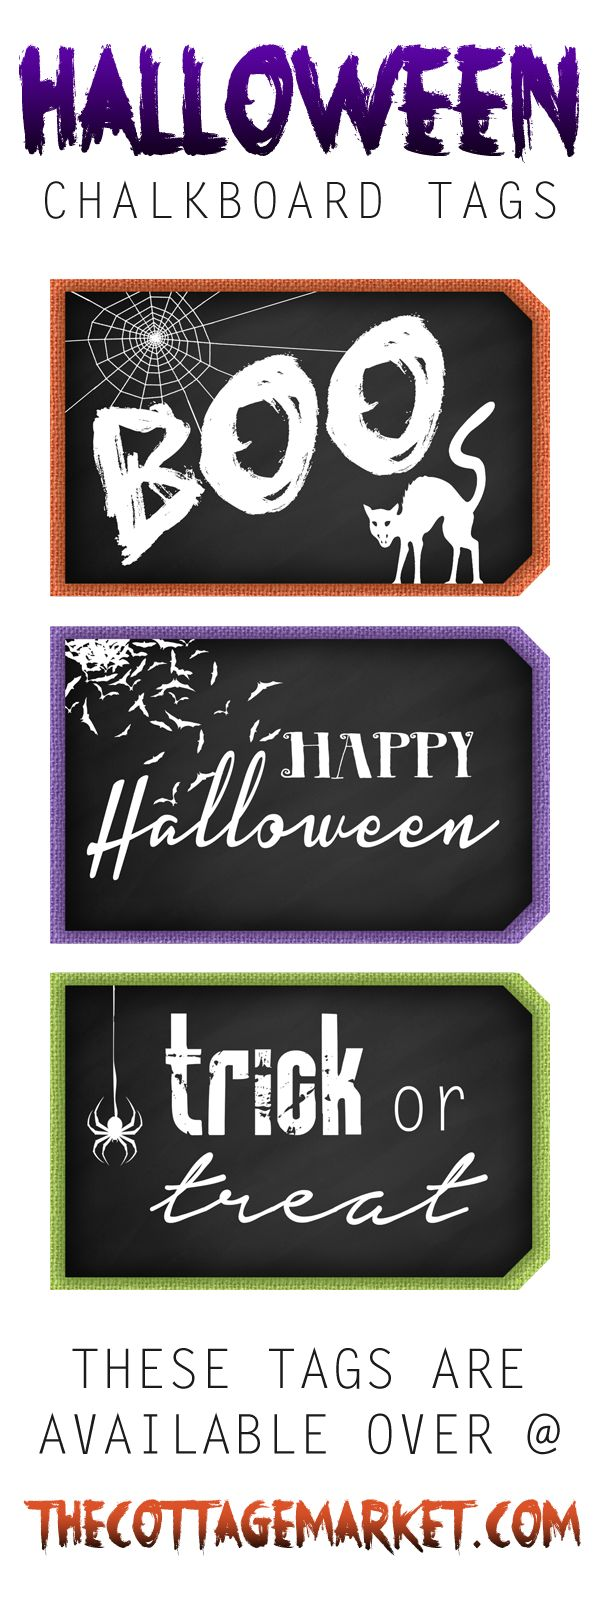 Are you looking to add to something spooky to your tag collection? Then check out these Halloween Chalkboard Tags to it right now! They are spooktacular!!!!